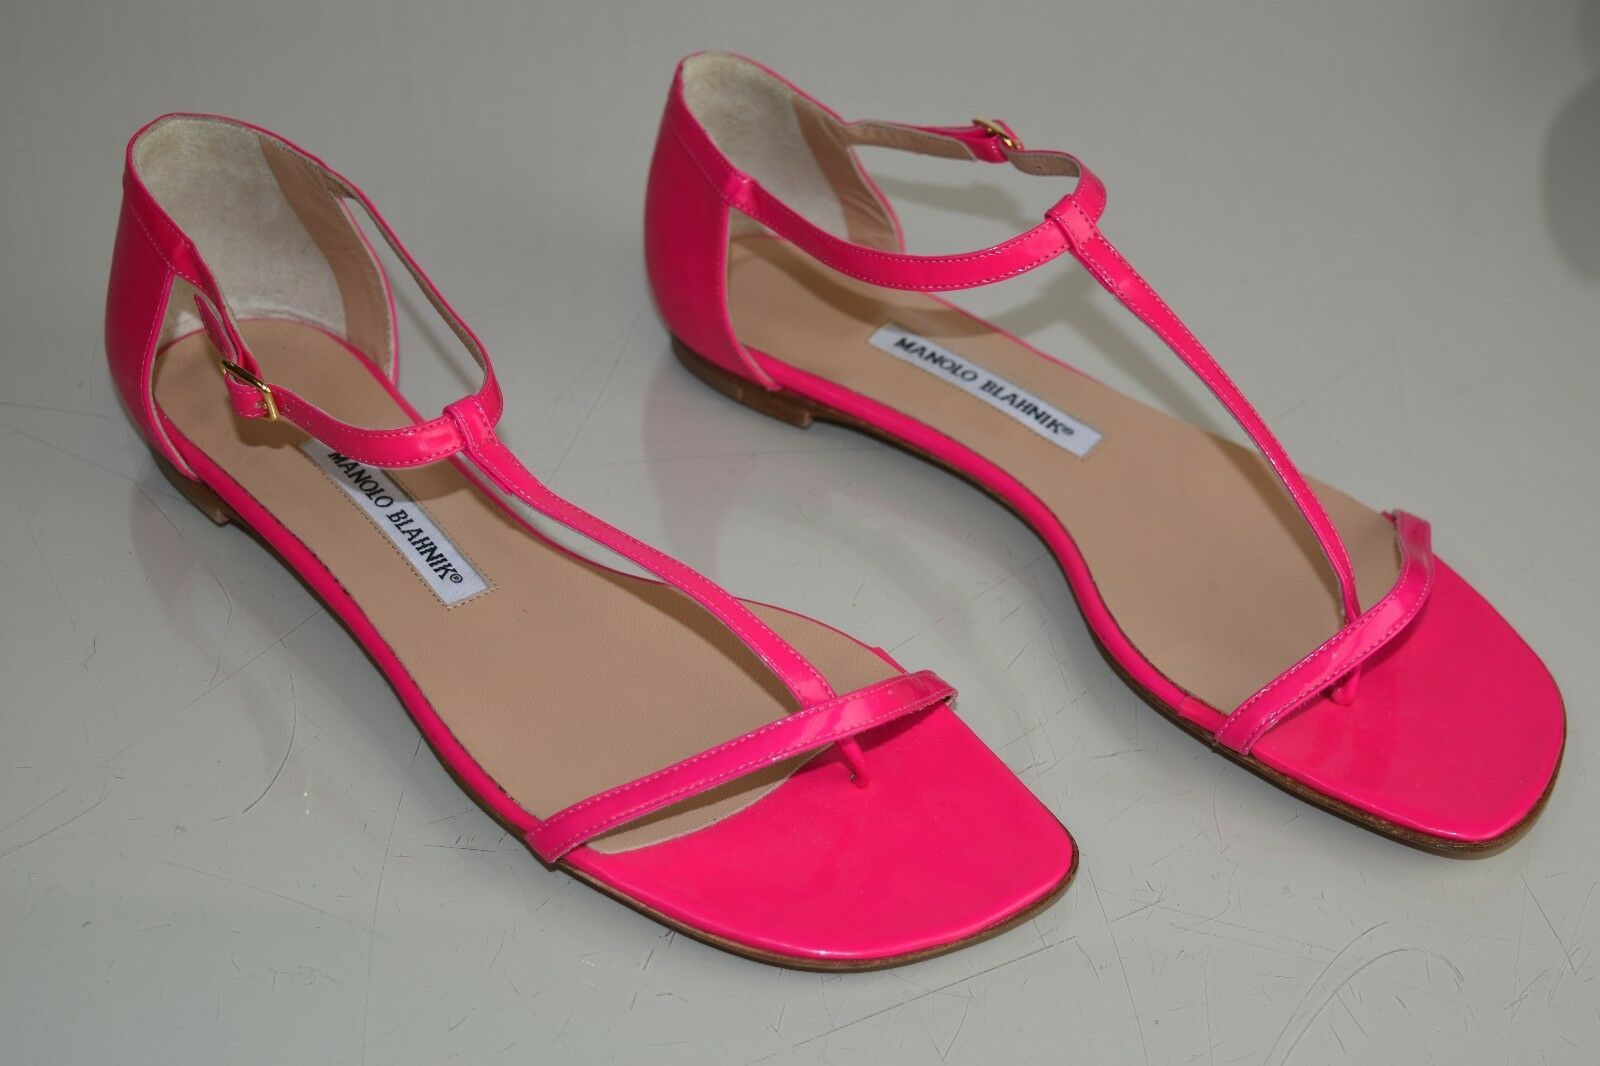 NEW PATENT MANOLO BLAHNIK STRAPPY SANDALS FLATS HOT PINK PATENT NEW LEATHER Flat SHOES 40 e1c348